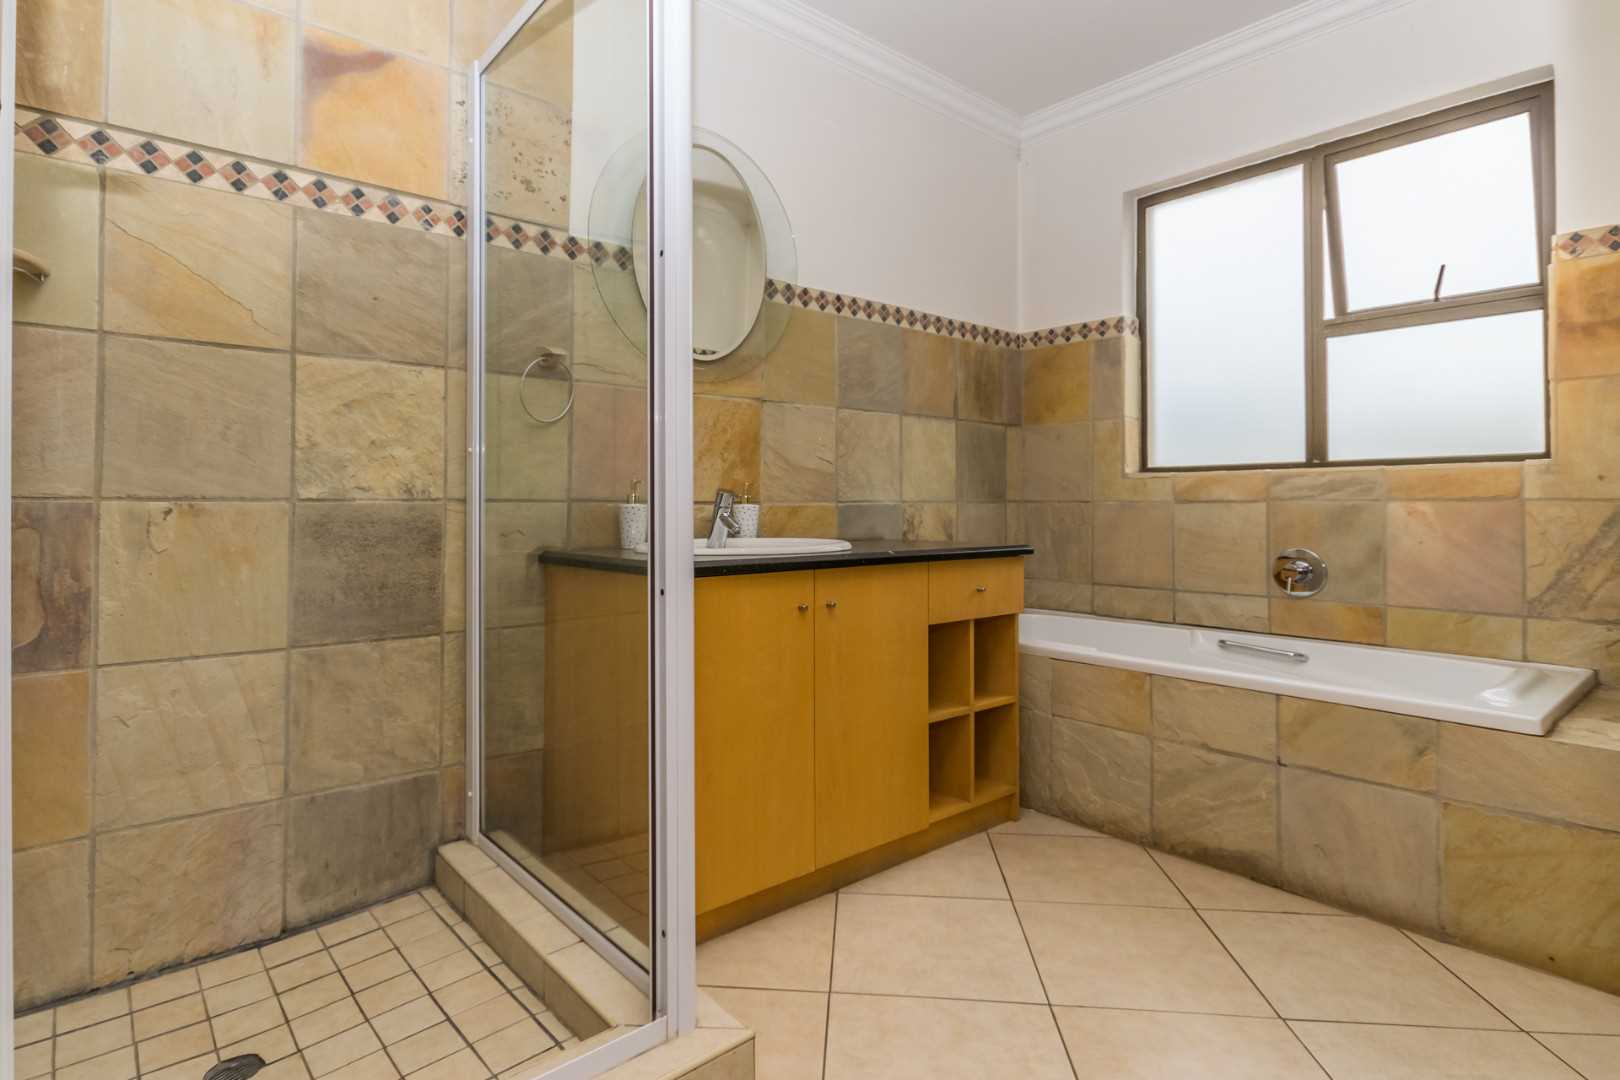 2nd Bathroom with Bath and Shower